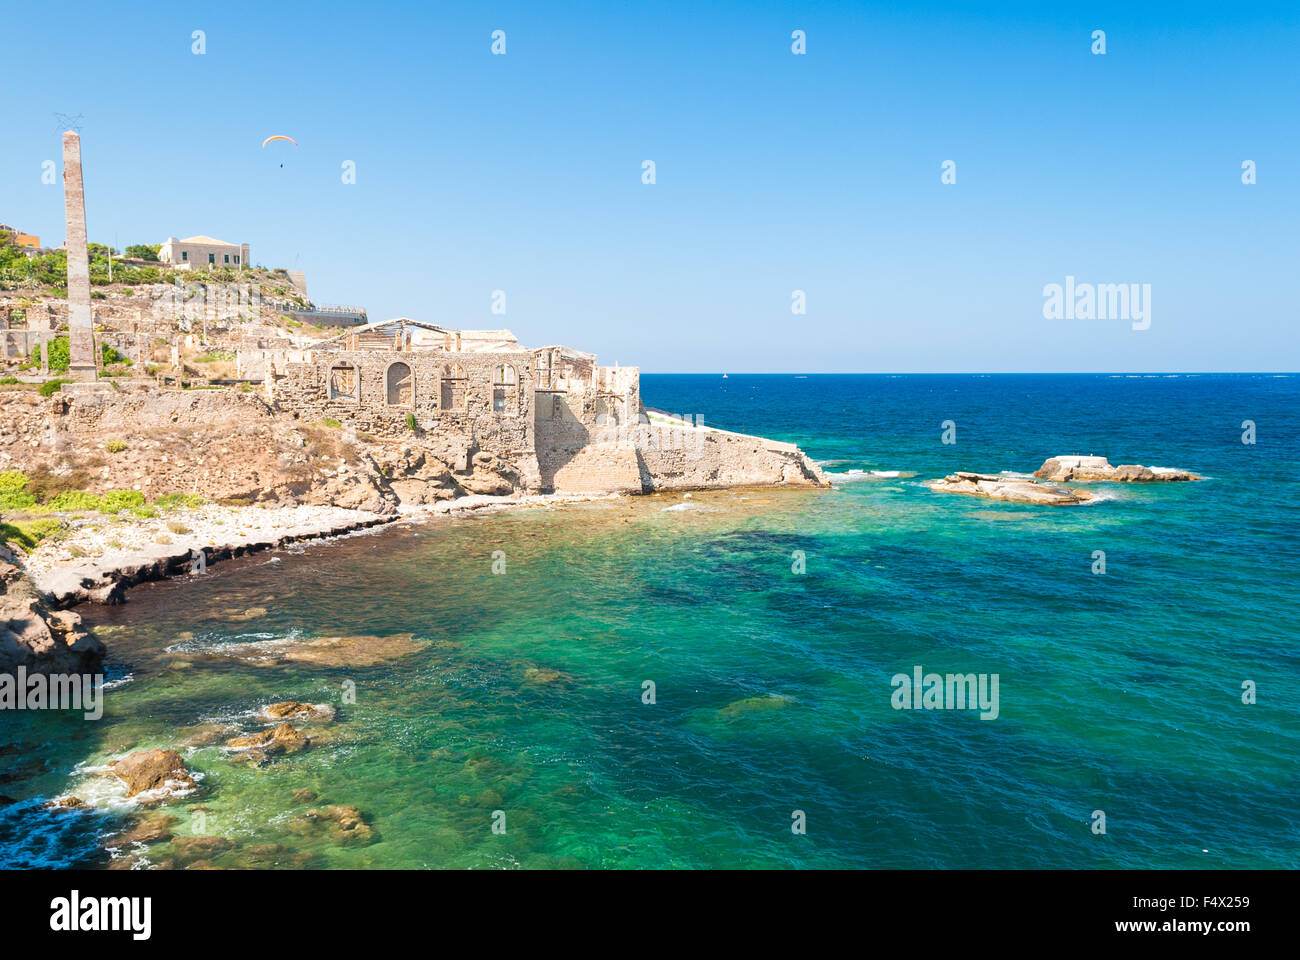 Coastline of Portopalo, in southern Sicily, with the ruins of an old factory for the manufacturing of tuna fish - Stock Image